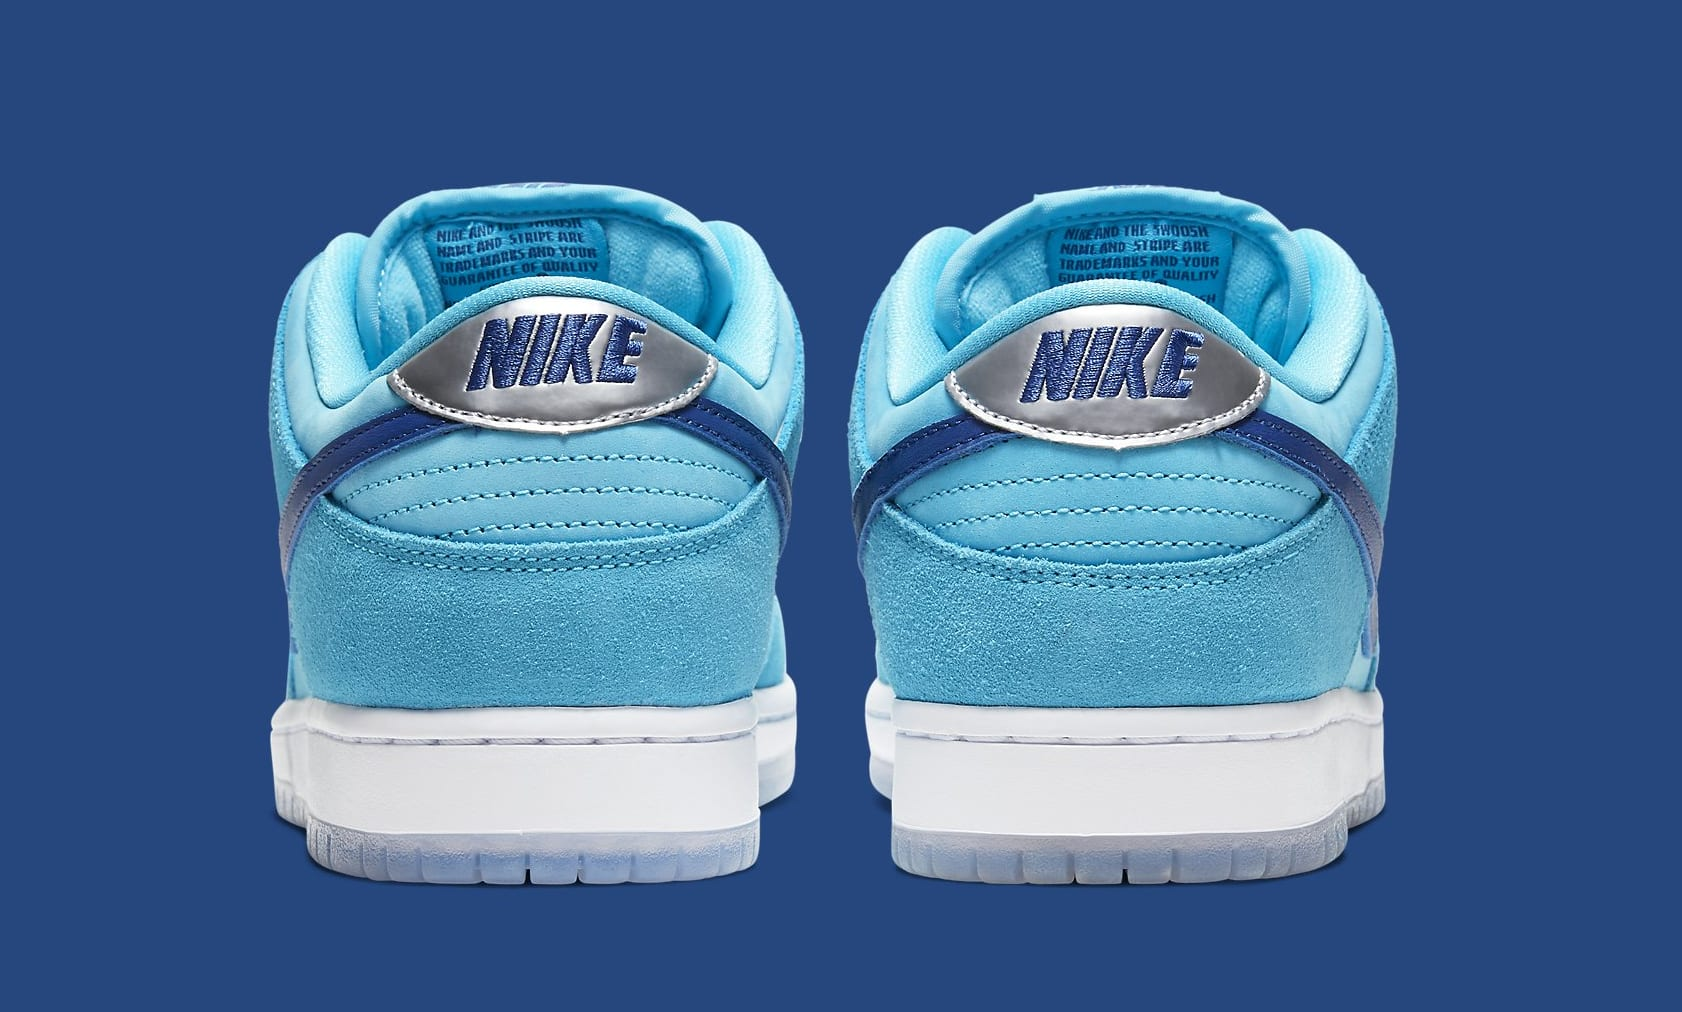 Nike SB Dunk Low 'Blue Fury' BQ6817-400 Heel